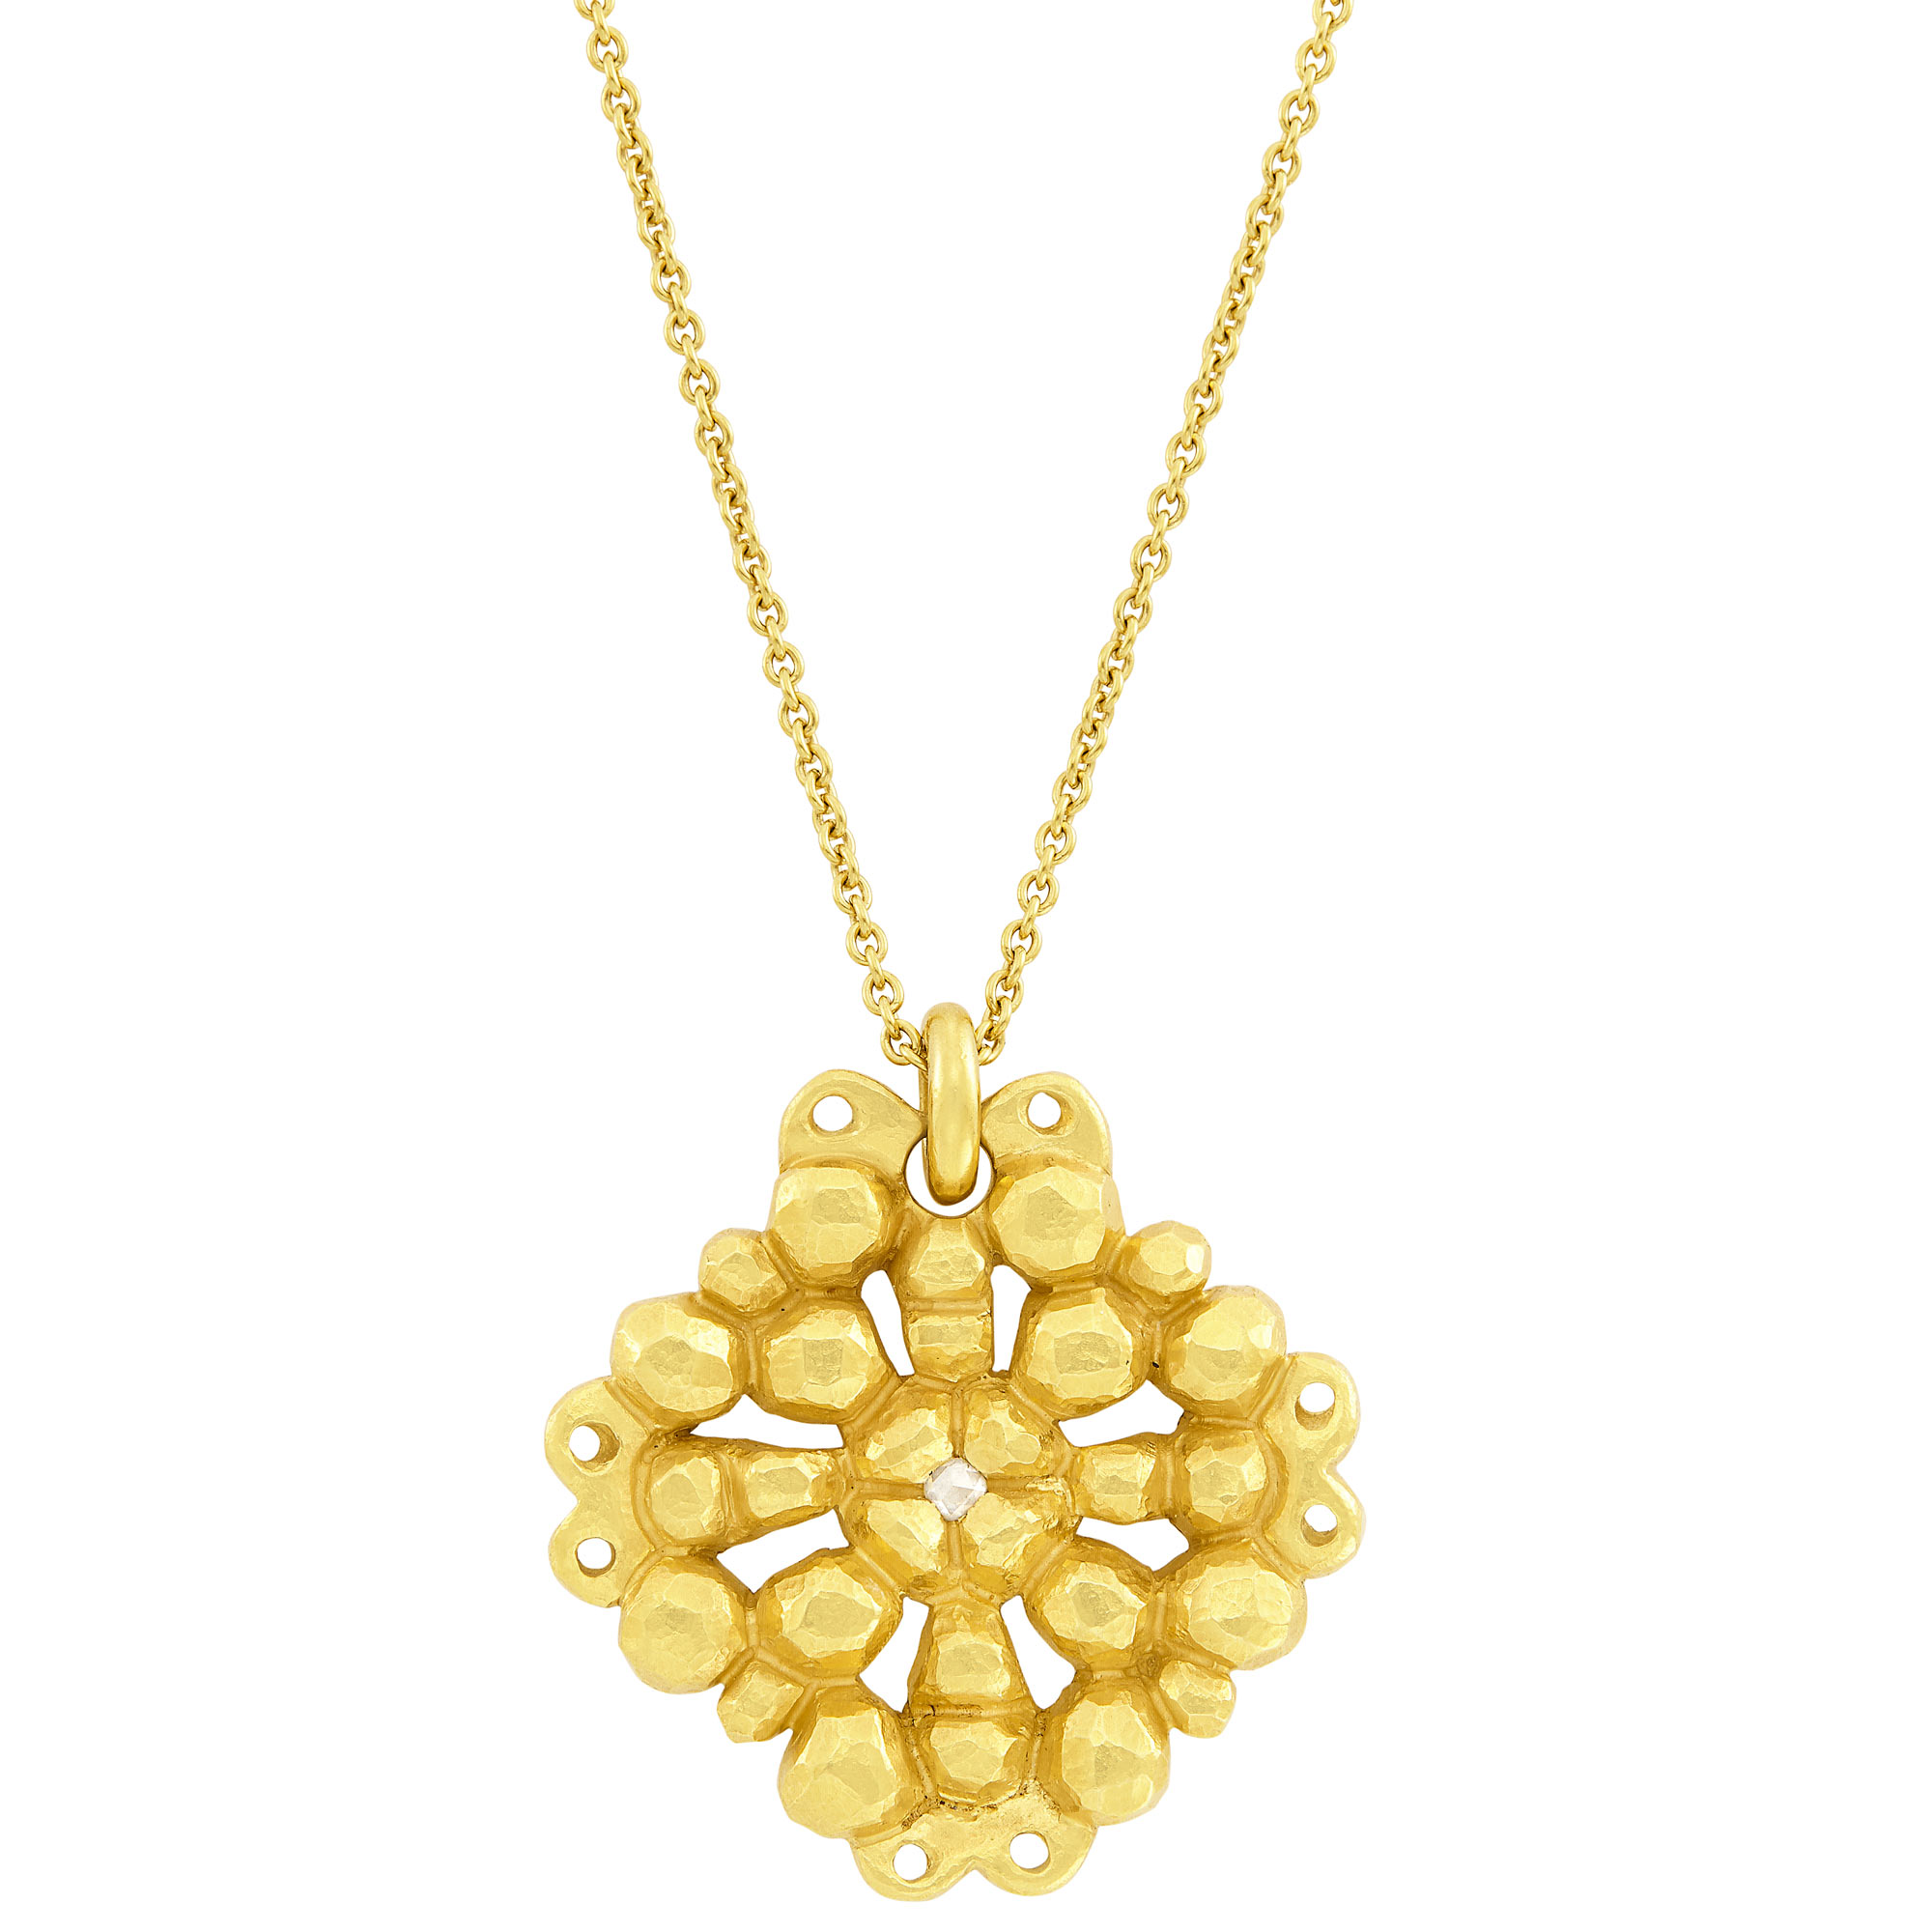 Lot image - High Karat Gold and Diamond Maltese Cross Pendant with Chain Necklace, Linda Lee Johnson